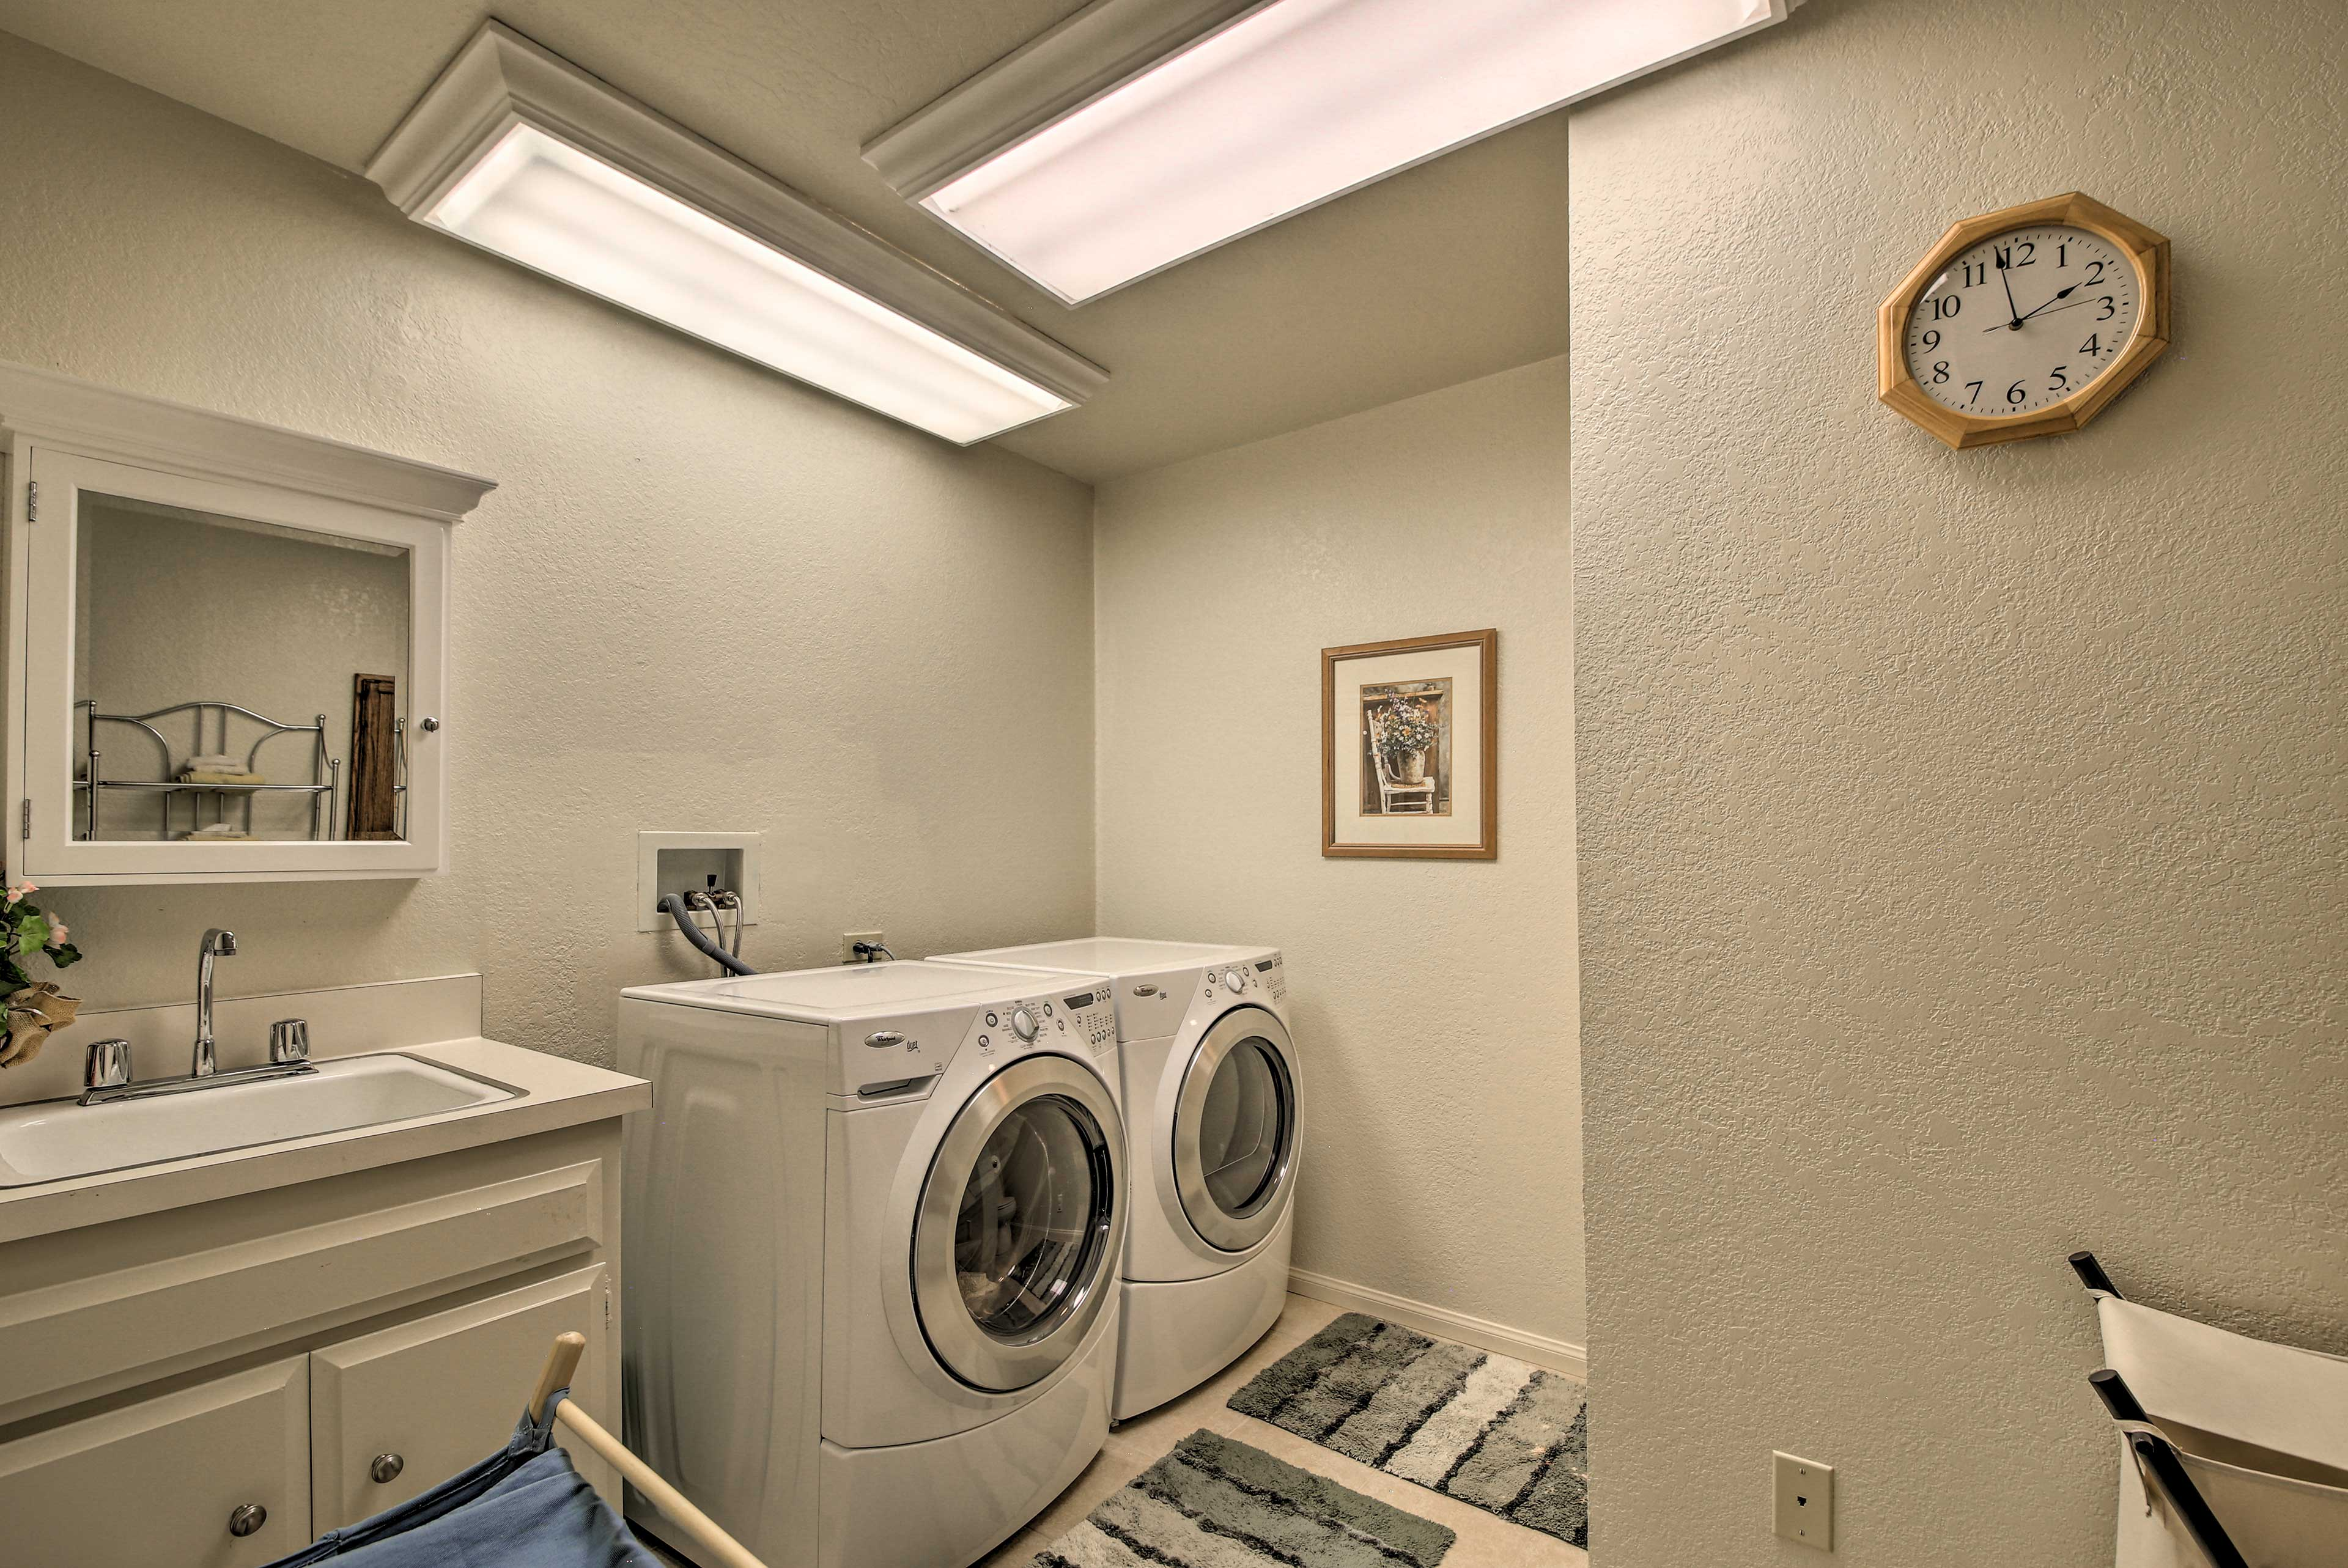 Take care of your clothes by using the washer and dryer.